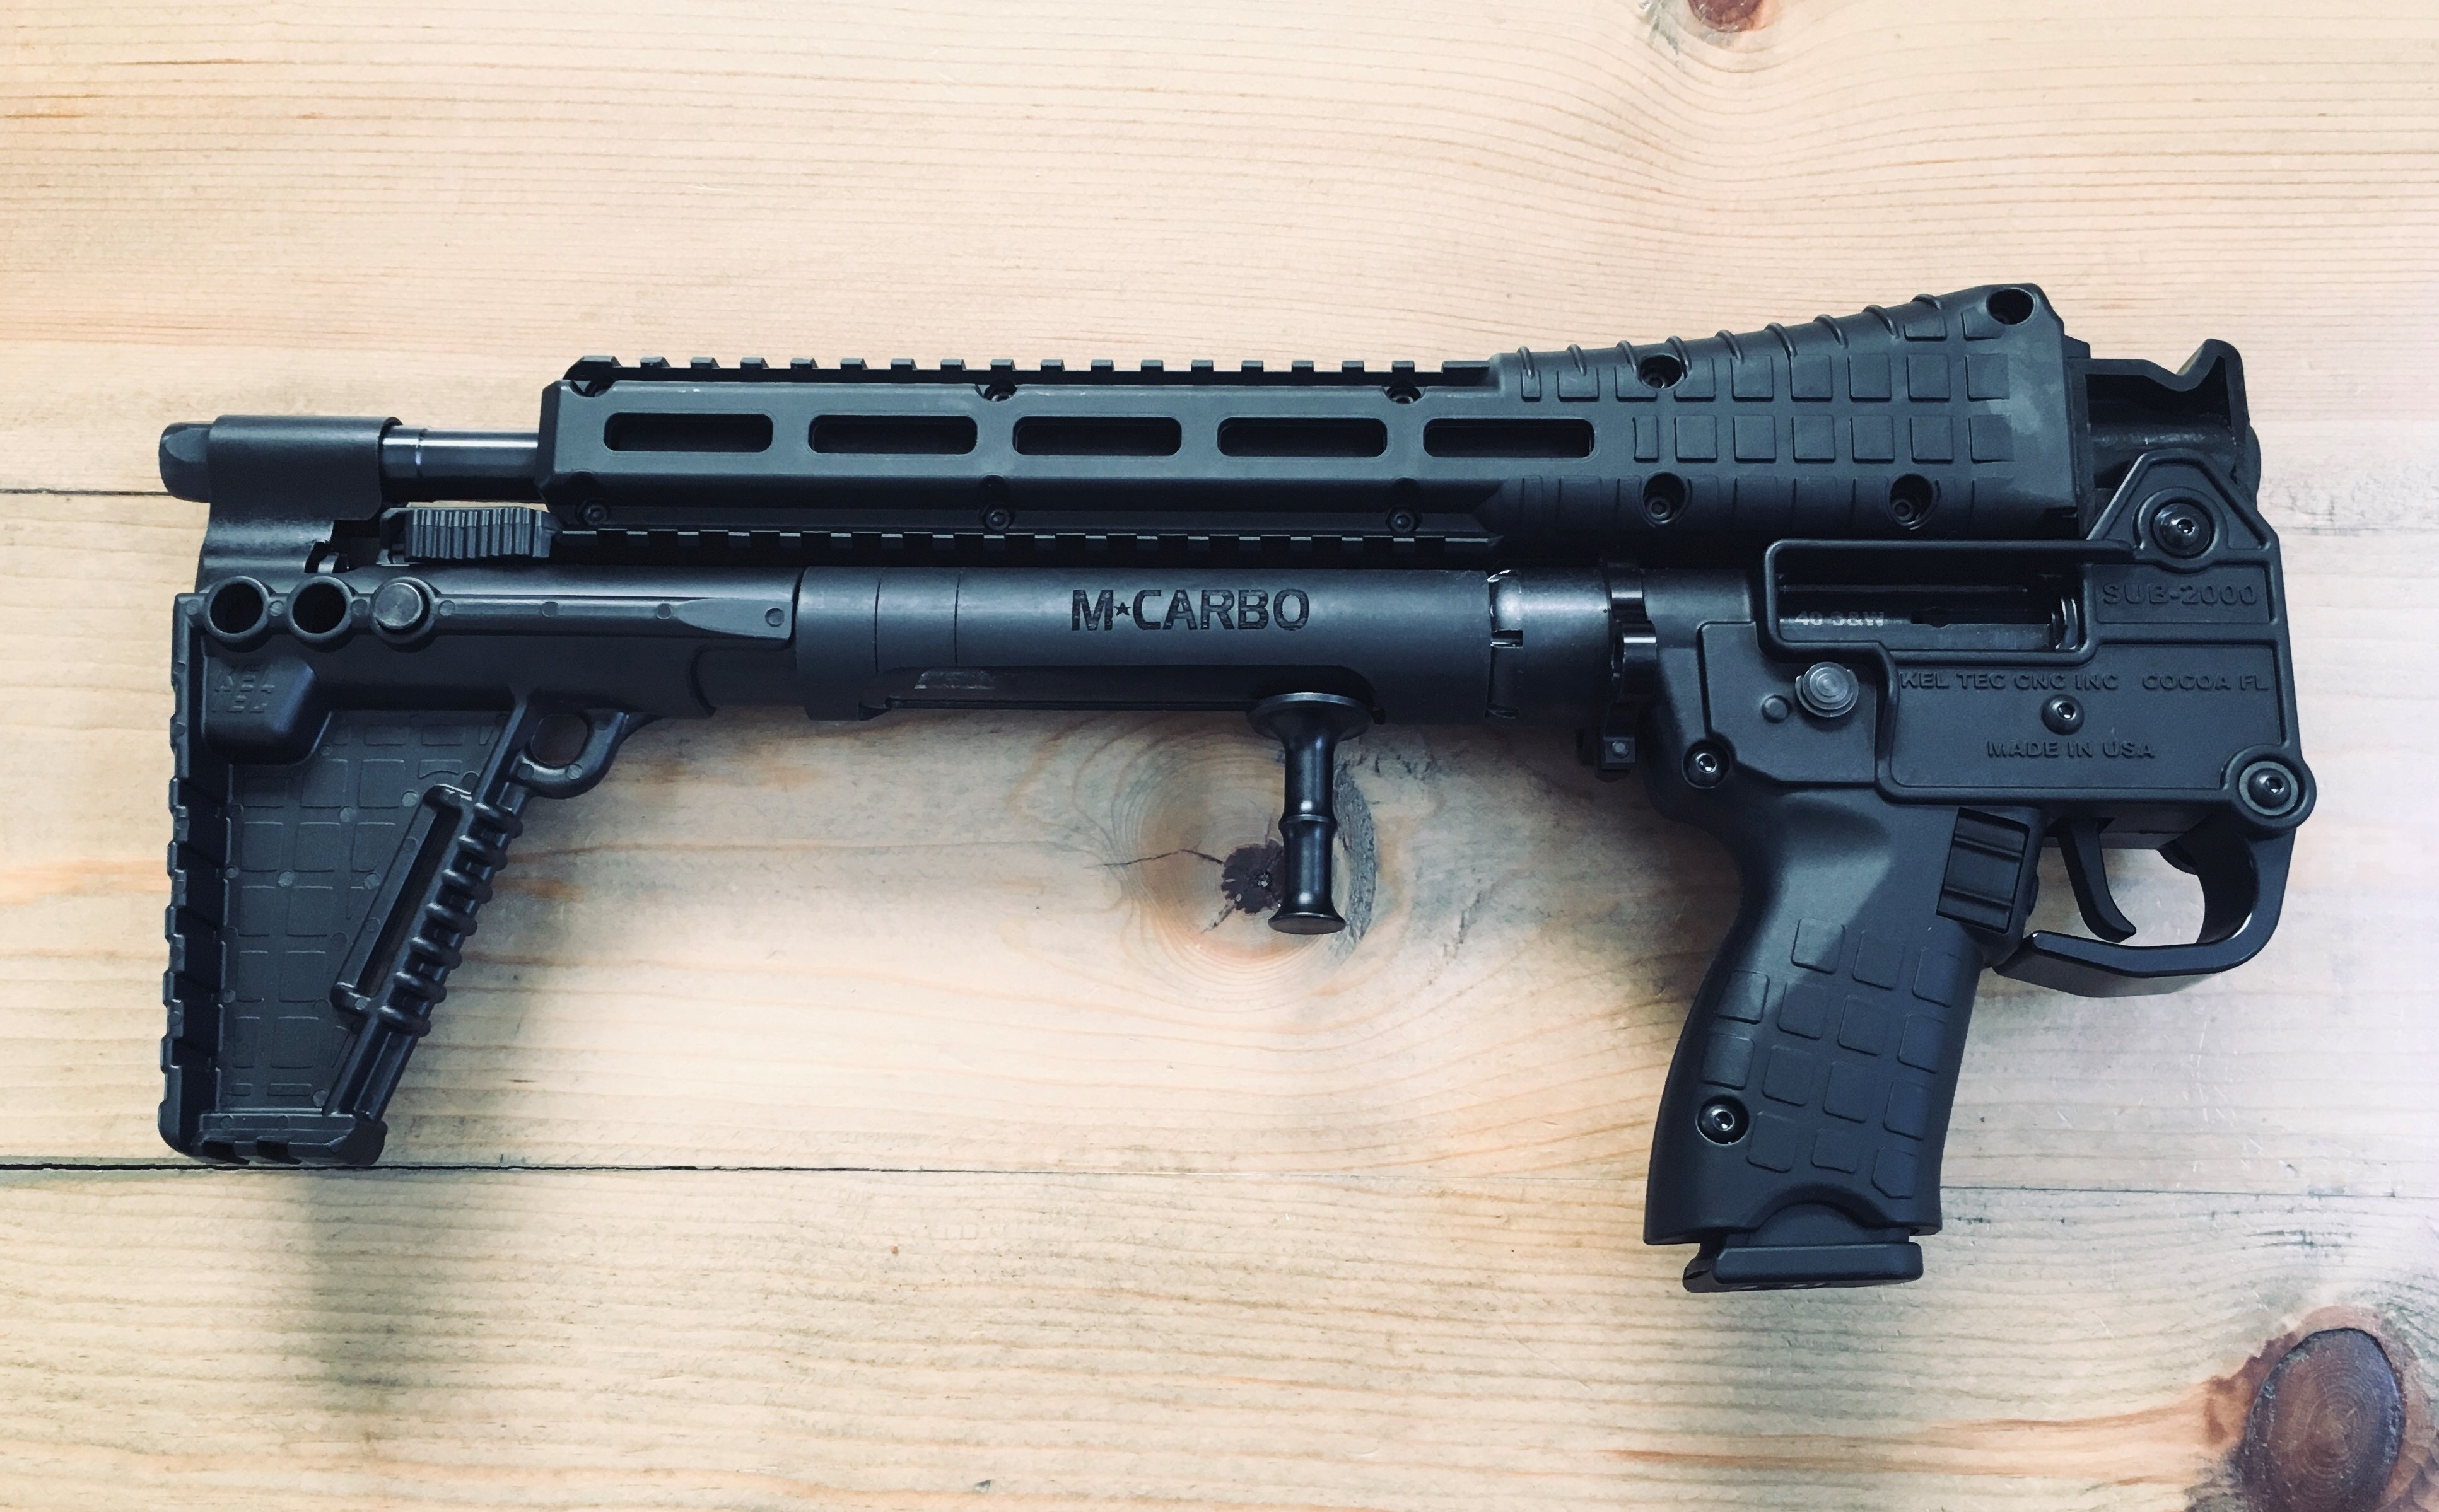 Top 8 Upgrades Every Kel Tec Sub 2000 Owner Needs Mcarbo Parts